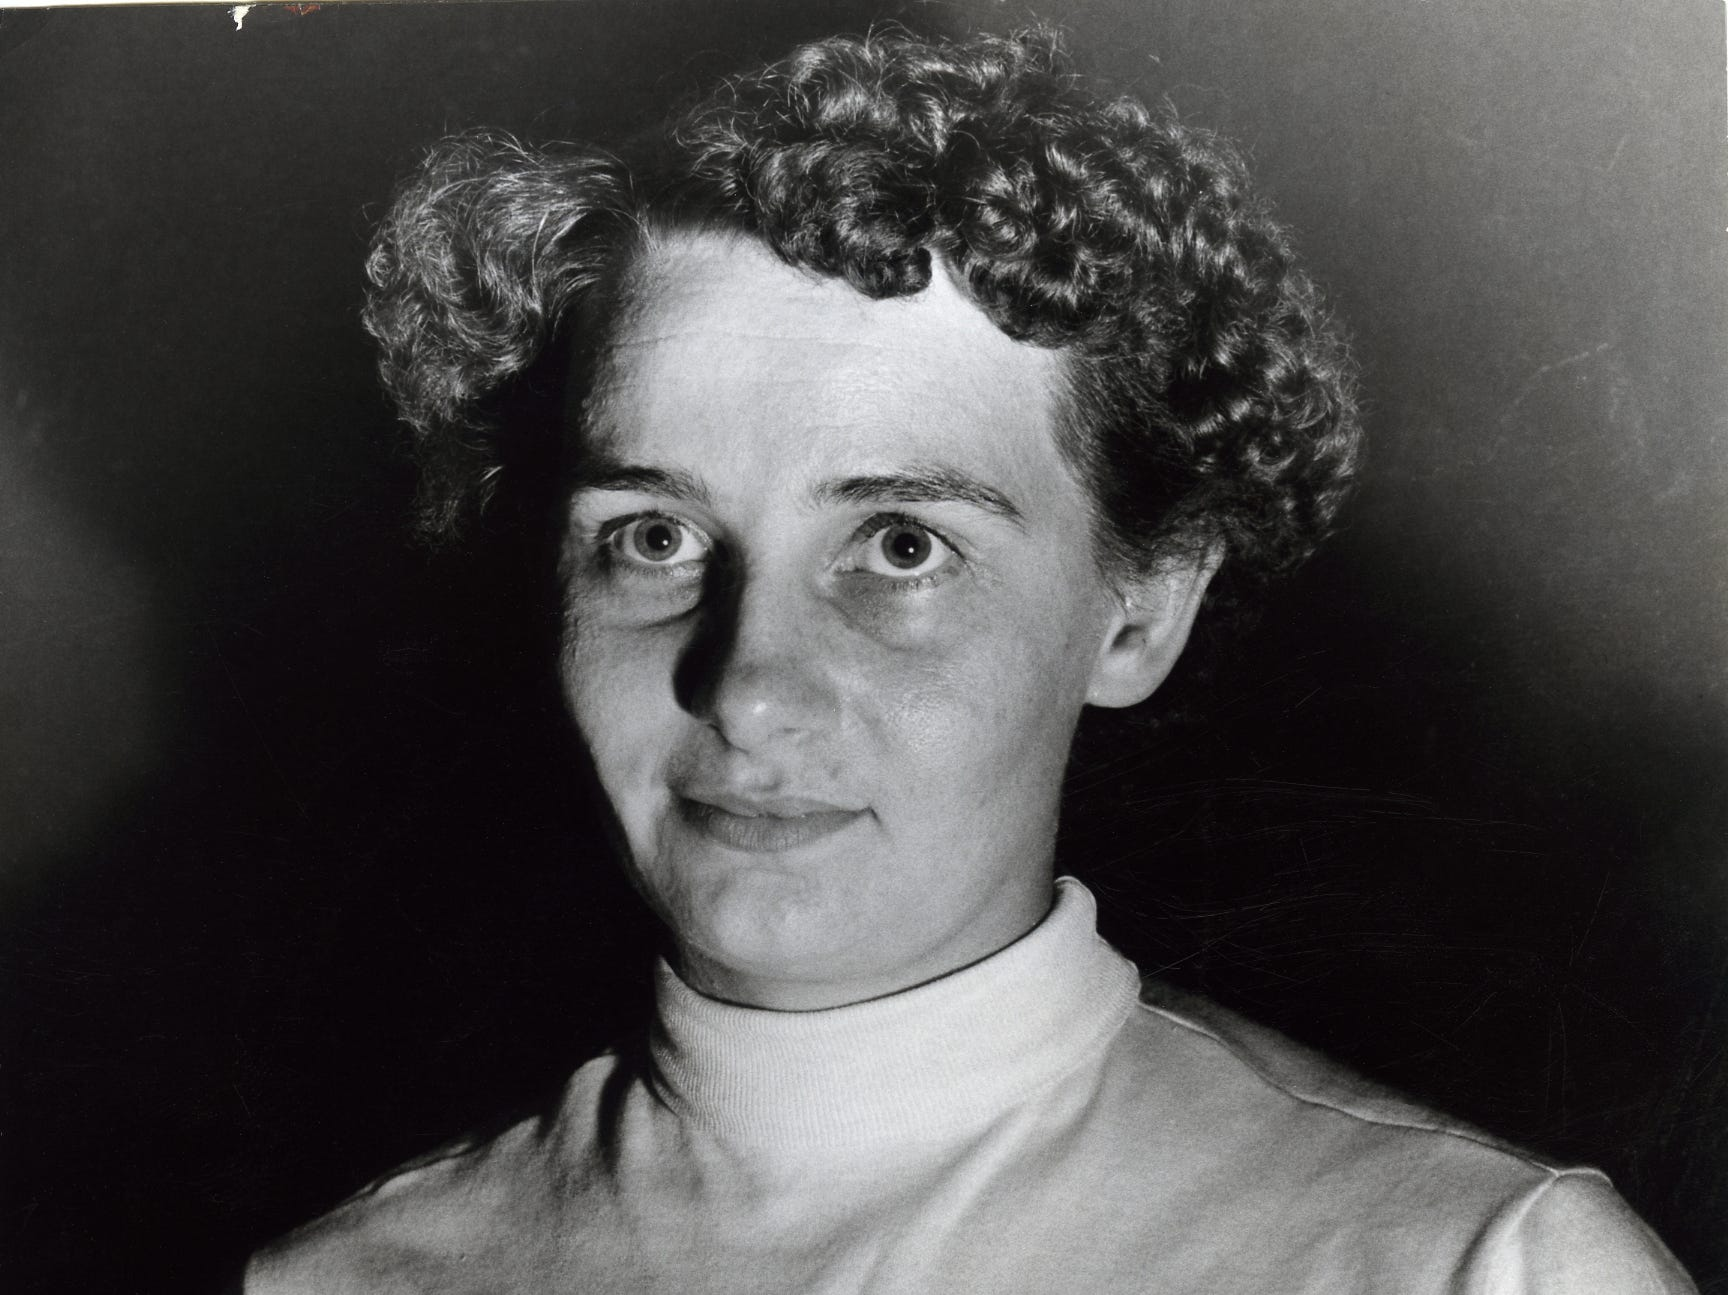 Mrs. Clarice Spurlock who was accused of poisoning her parents with arsenic in 1949.